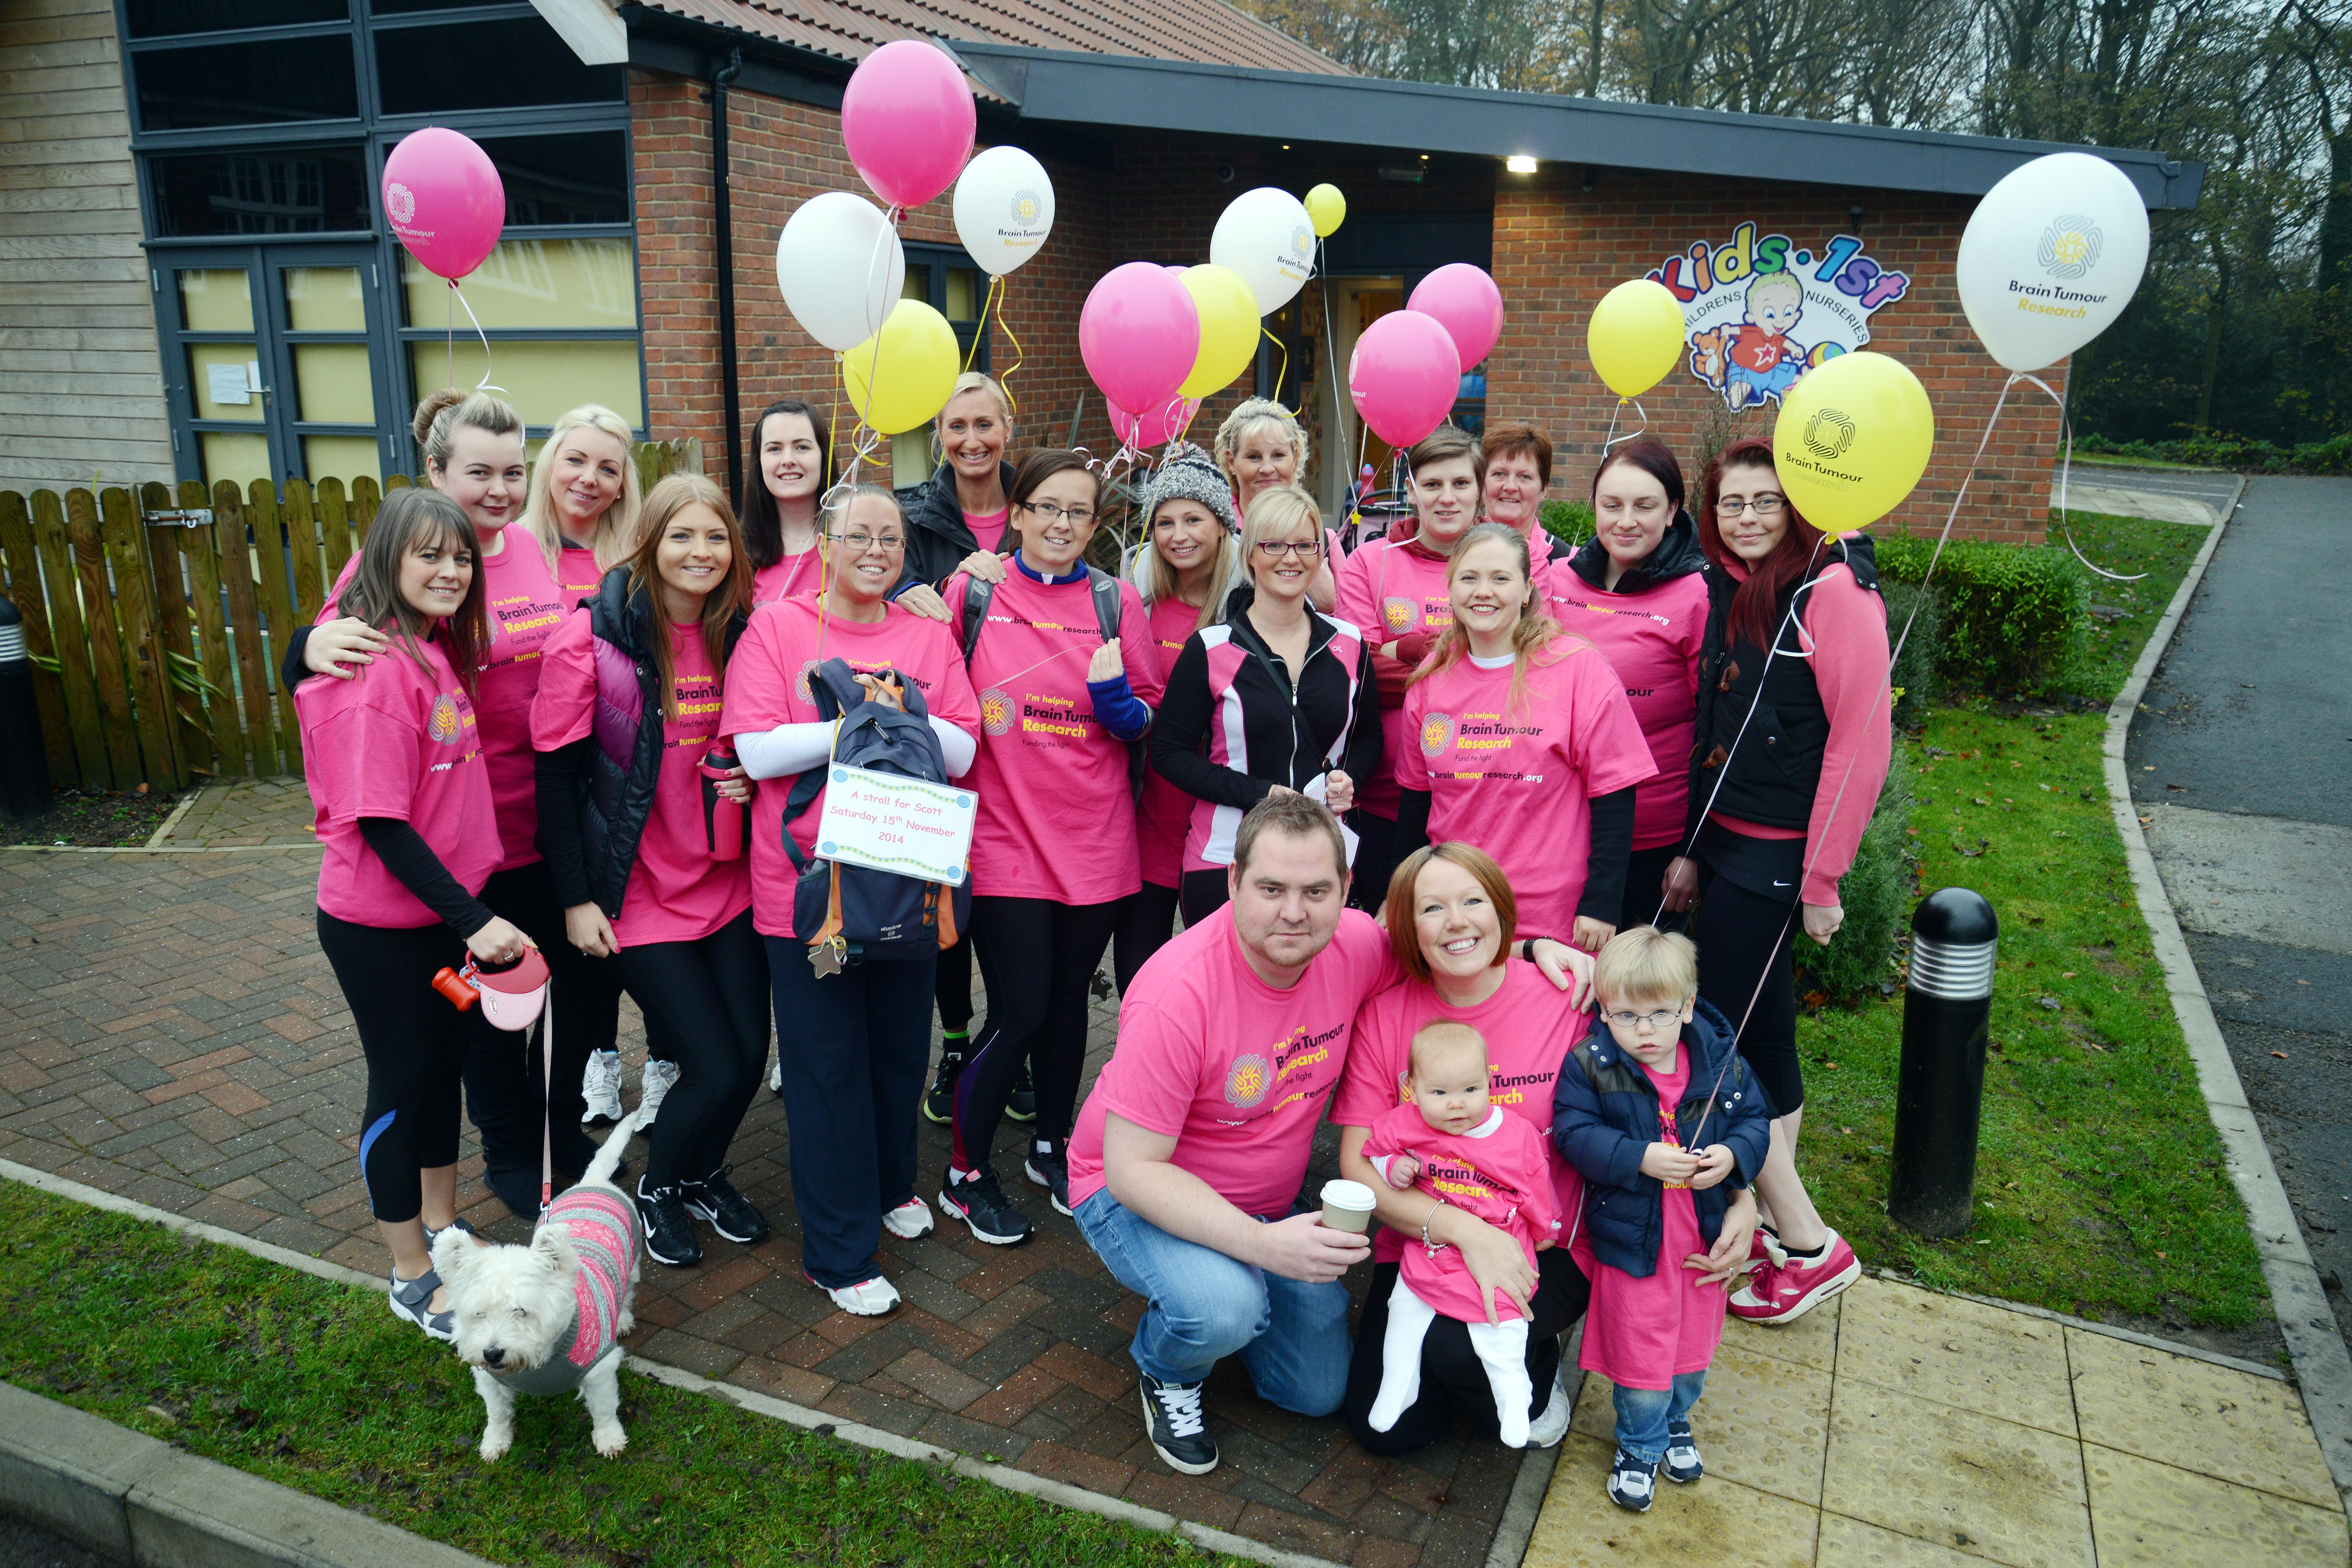 A grand day out for Brain Tumour Research!